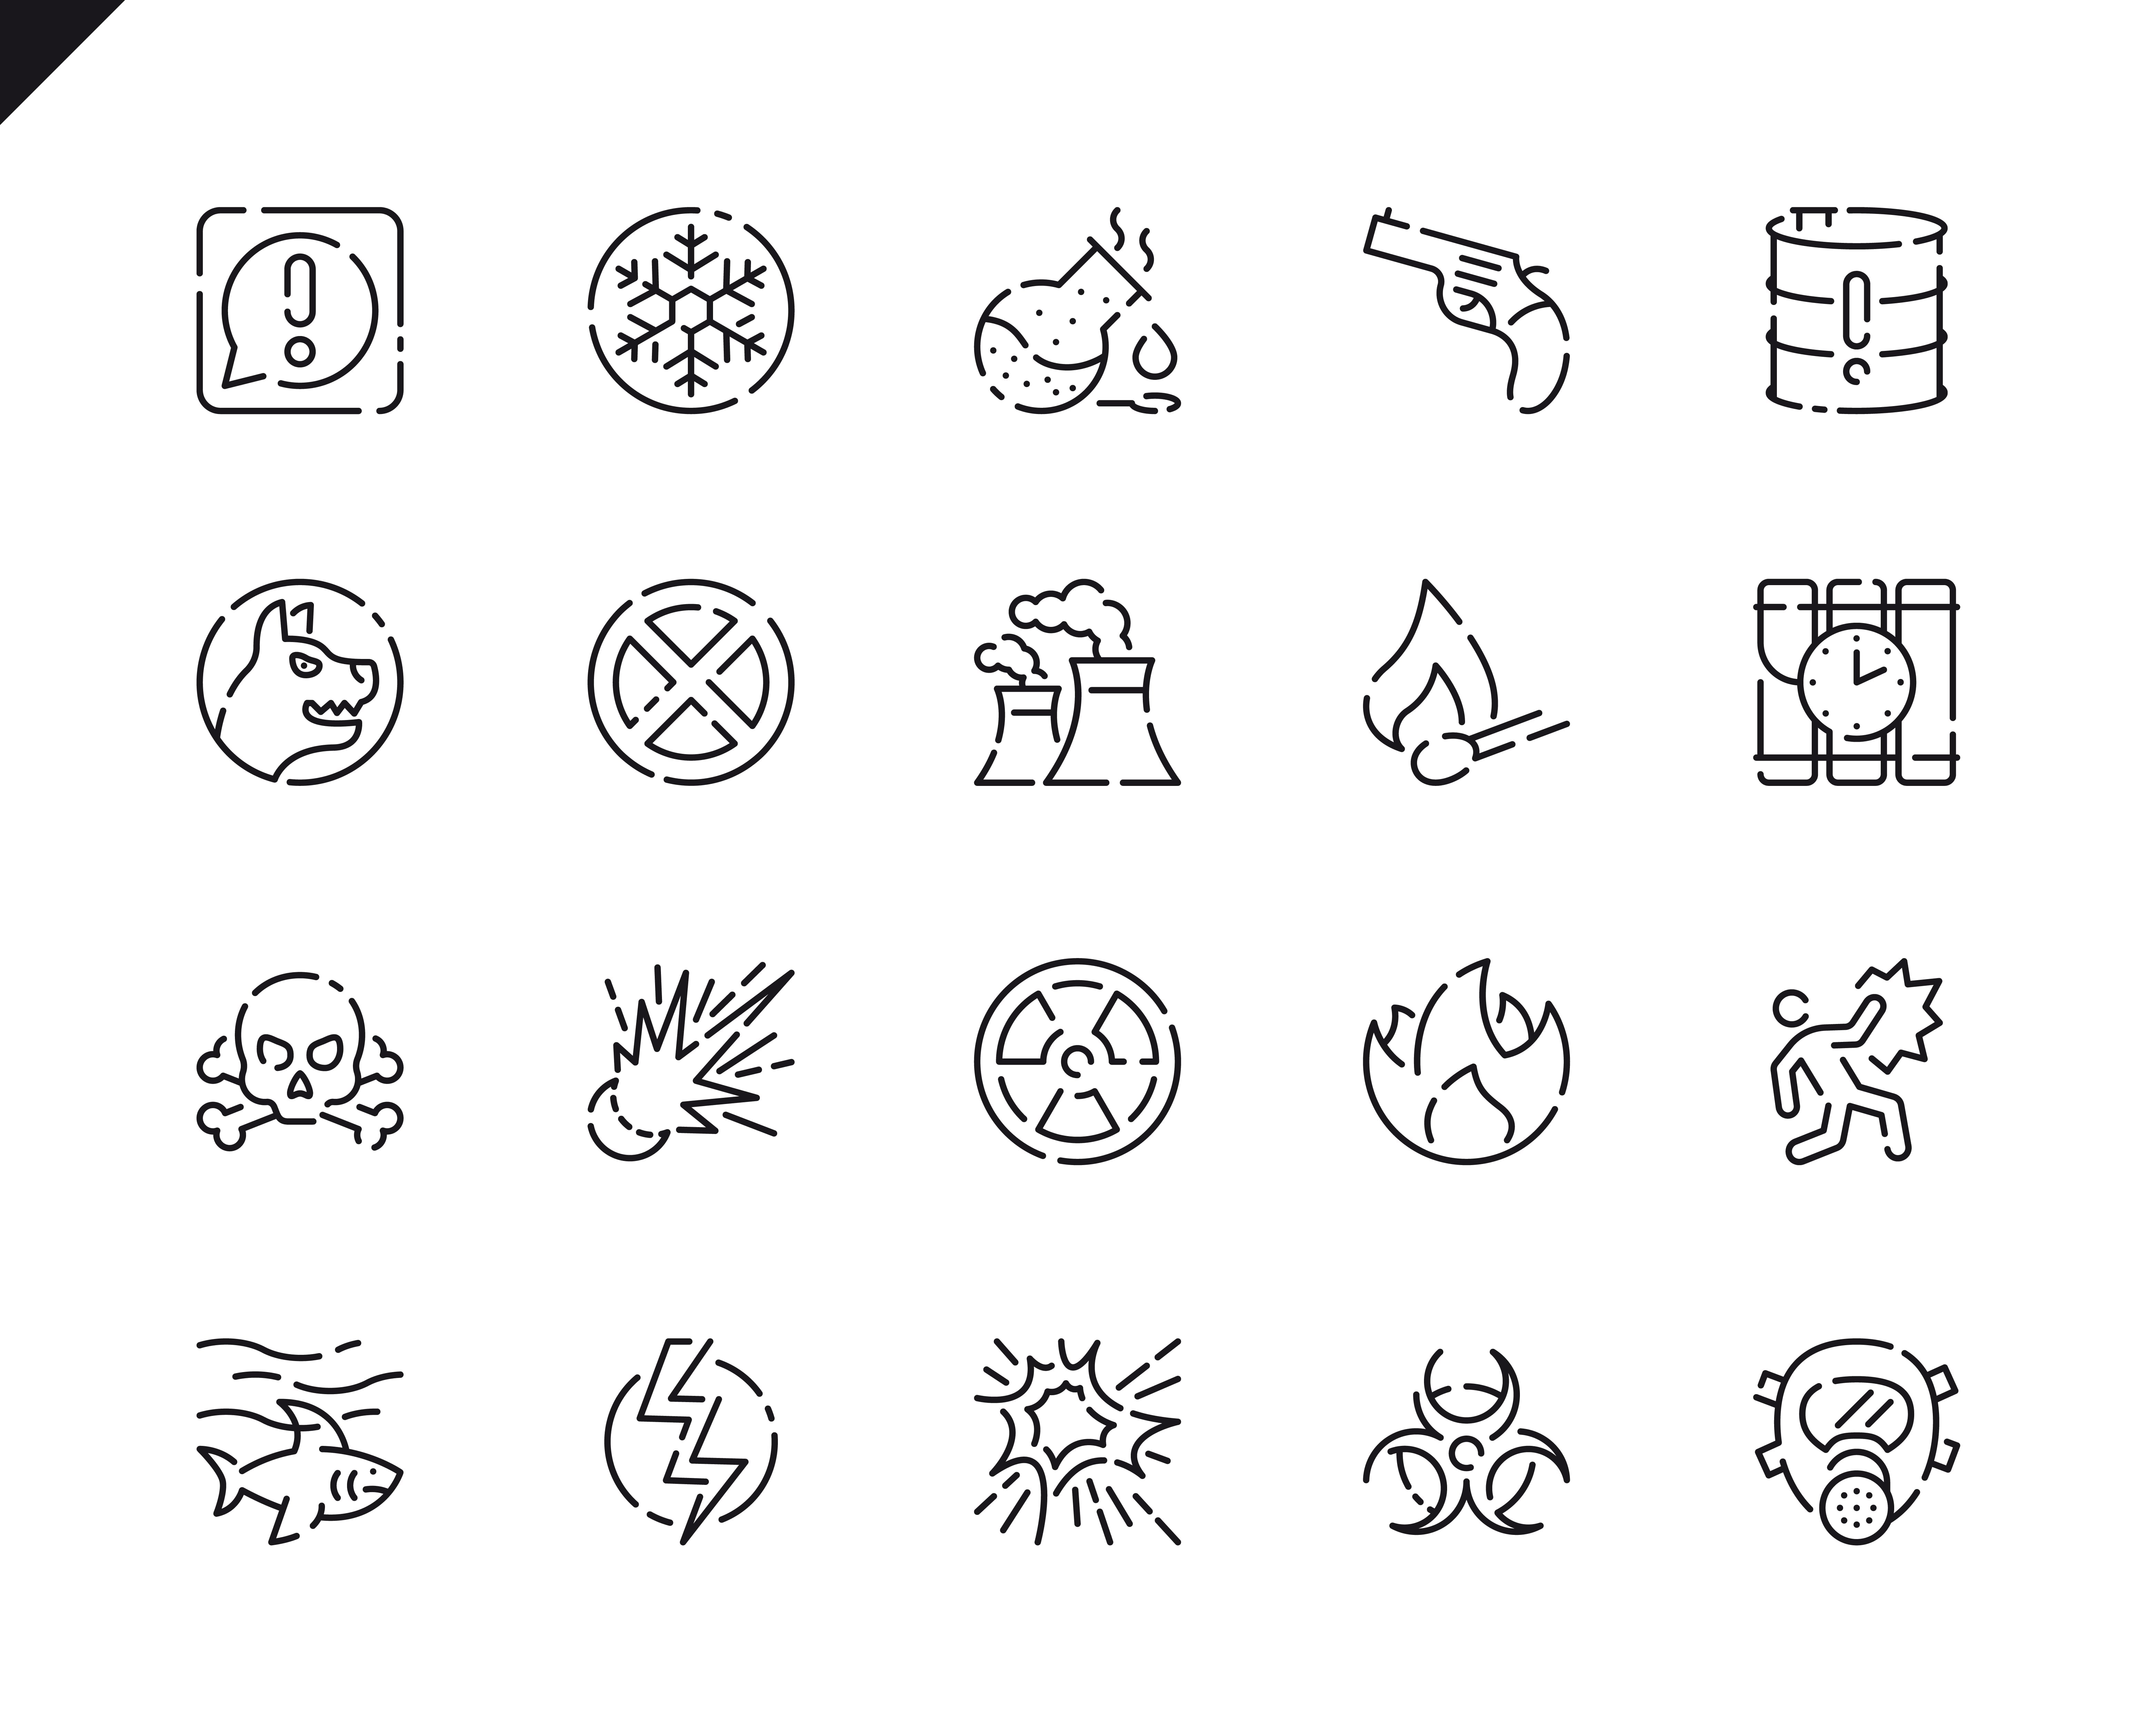 500 Business Line Icons - $22 ONLY - 8 4